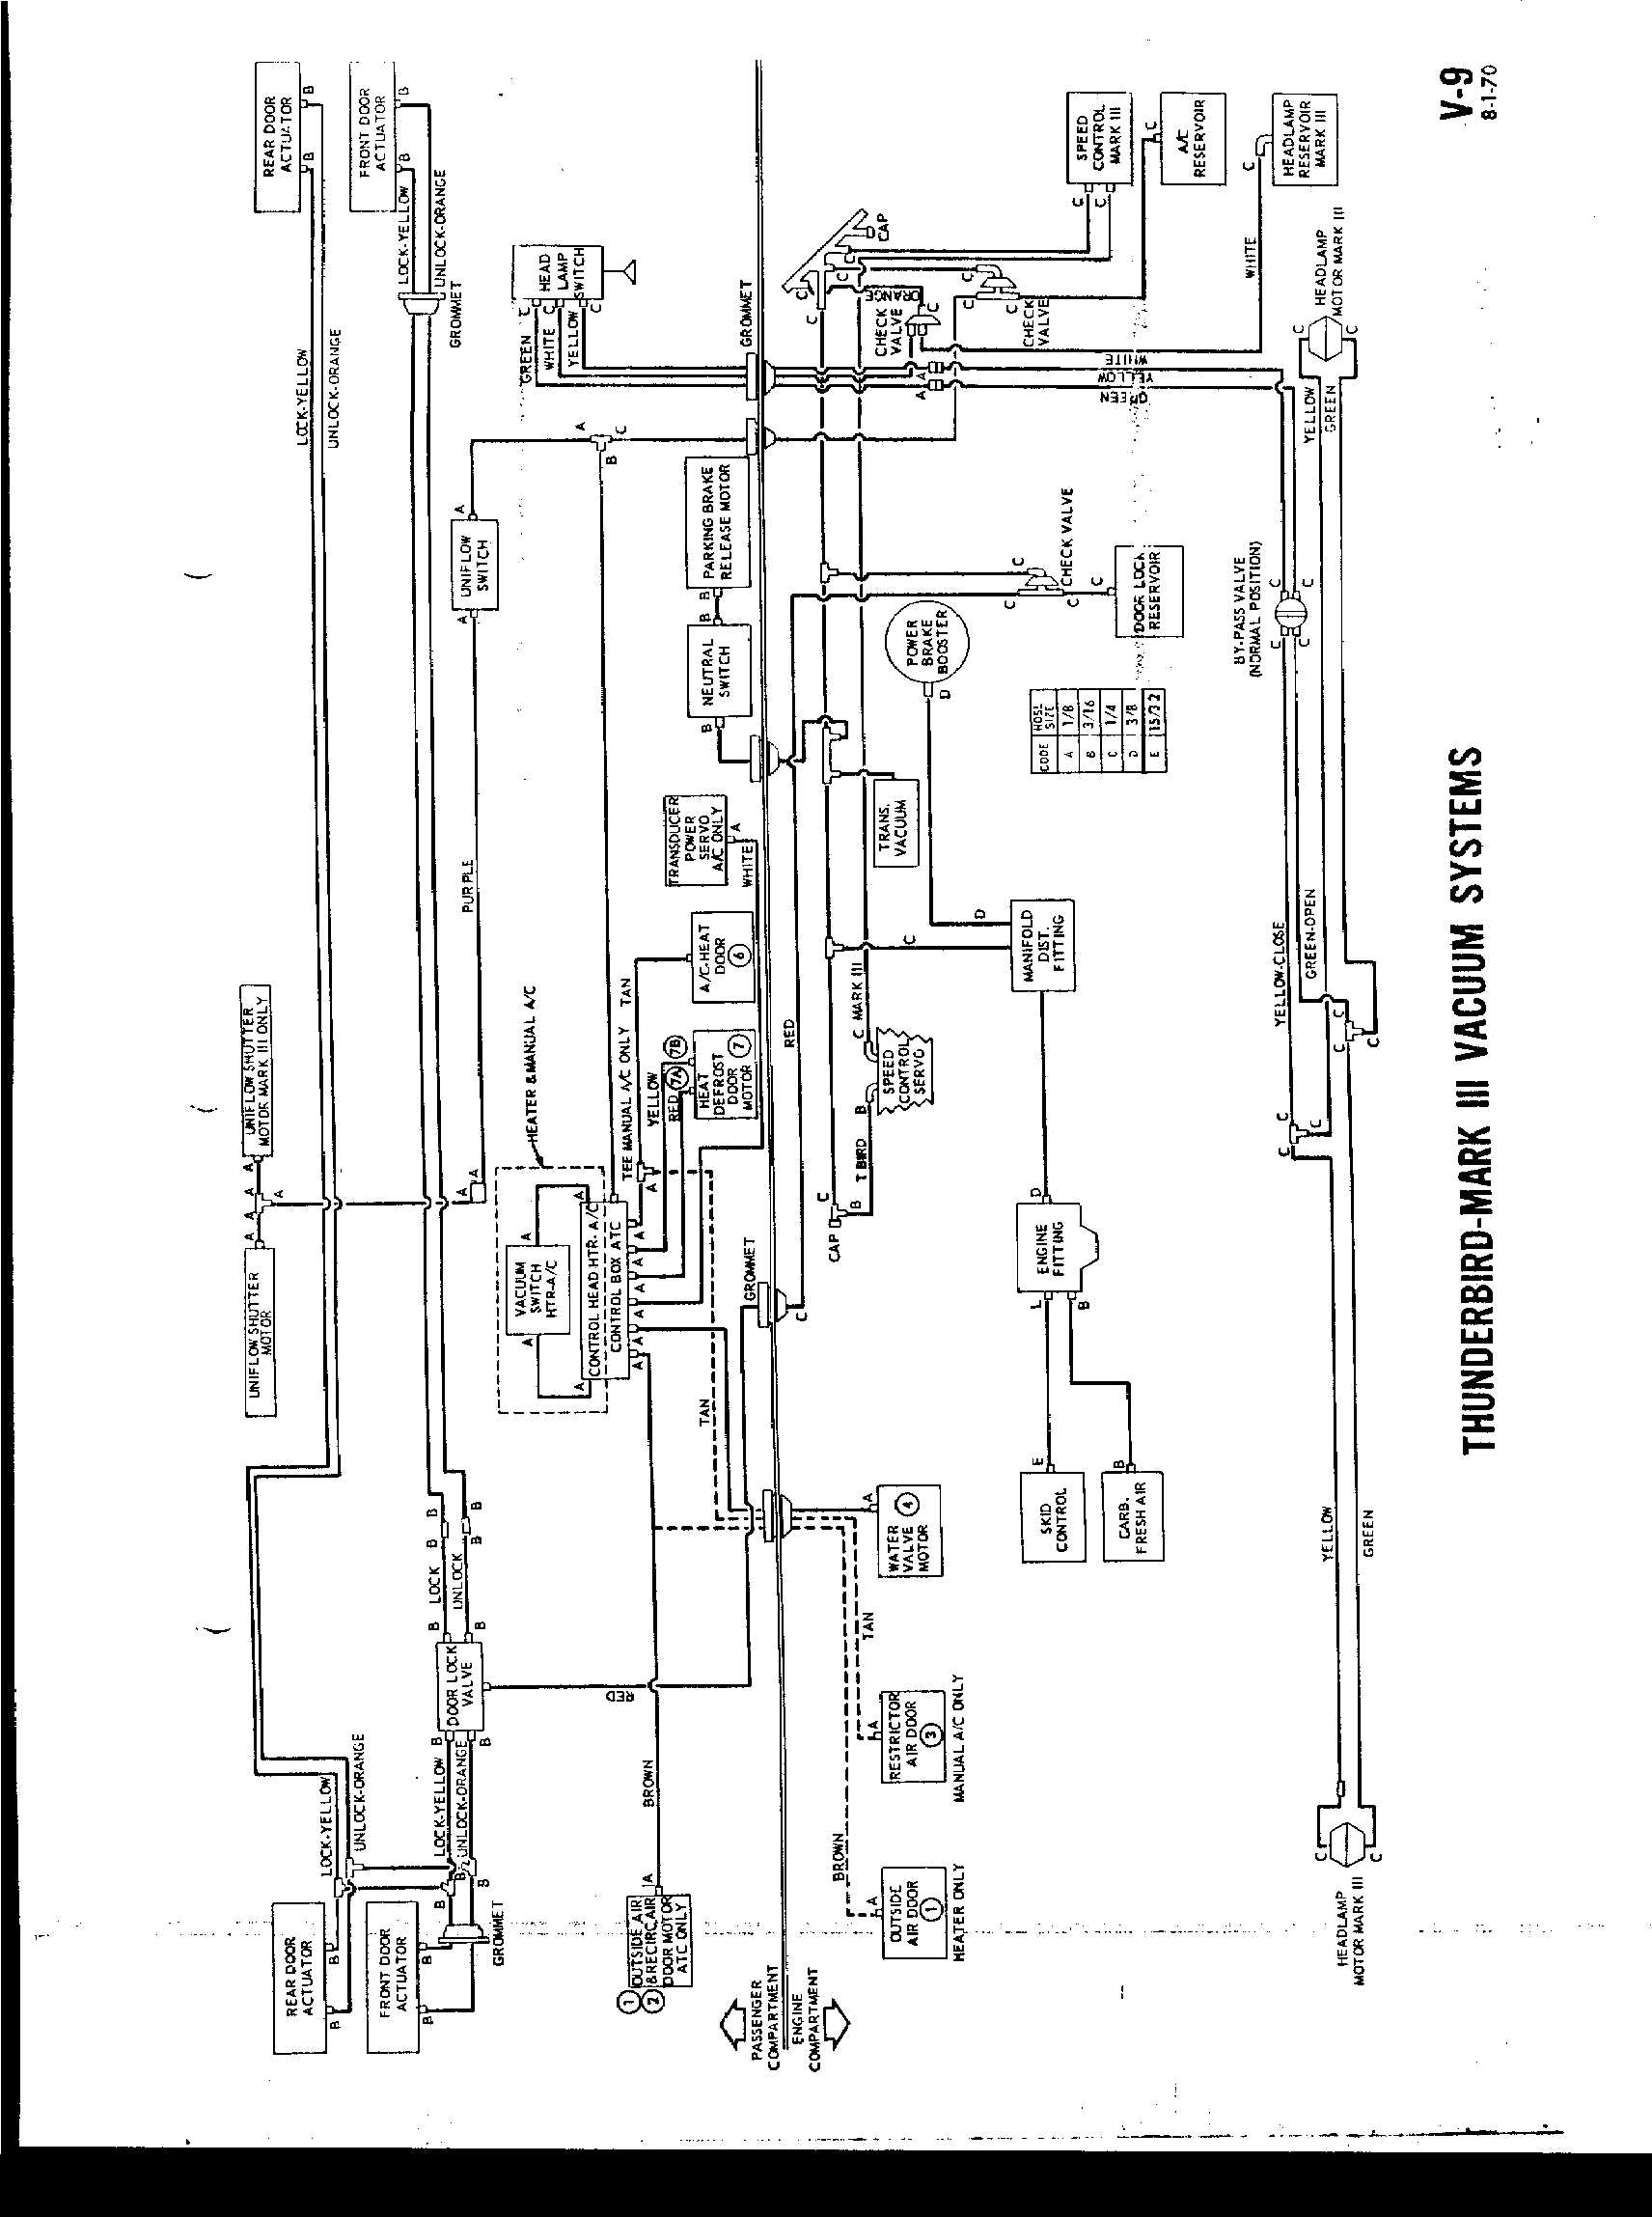 1994 ford thunderbird radio wiring diagram pv solar panel 1964 stereo get free